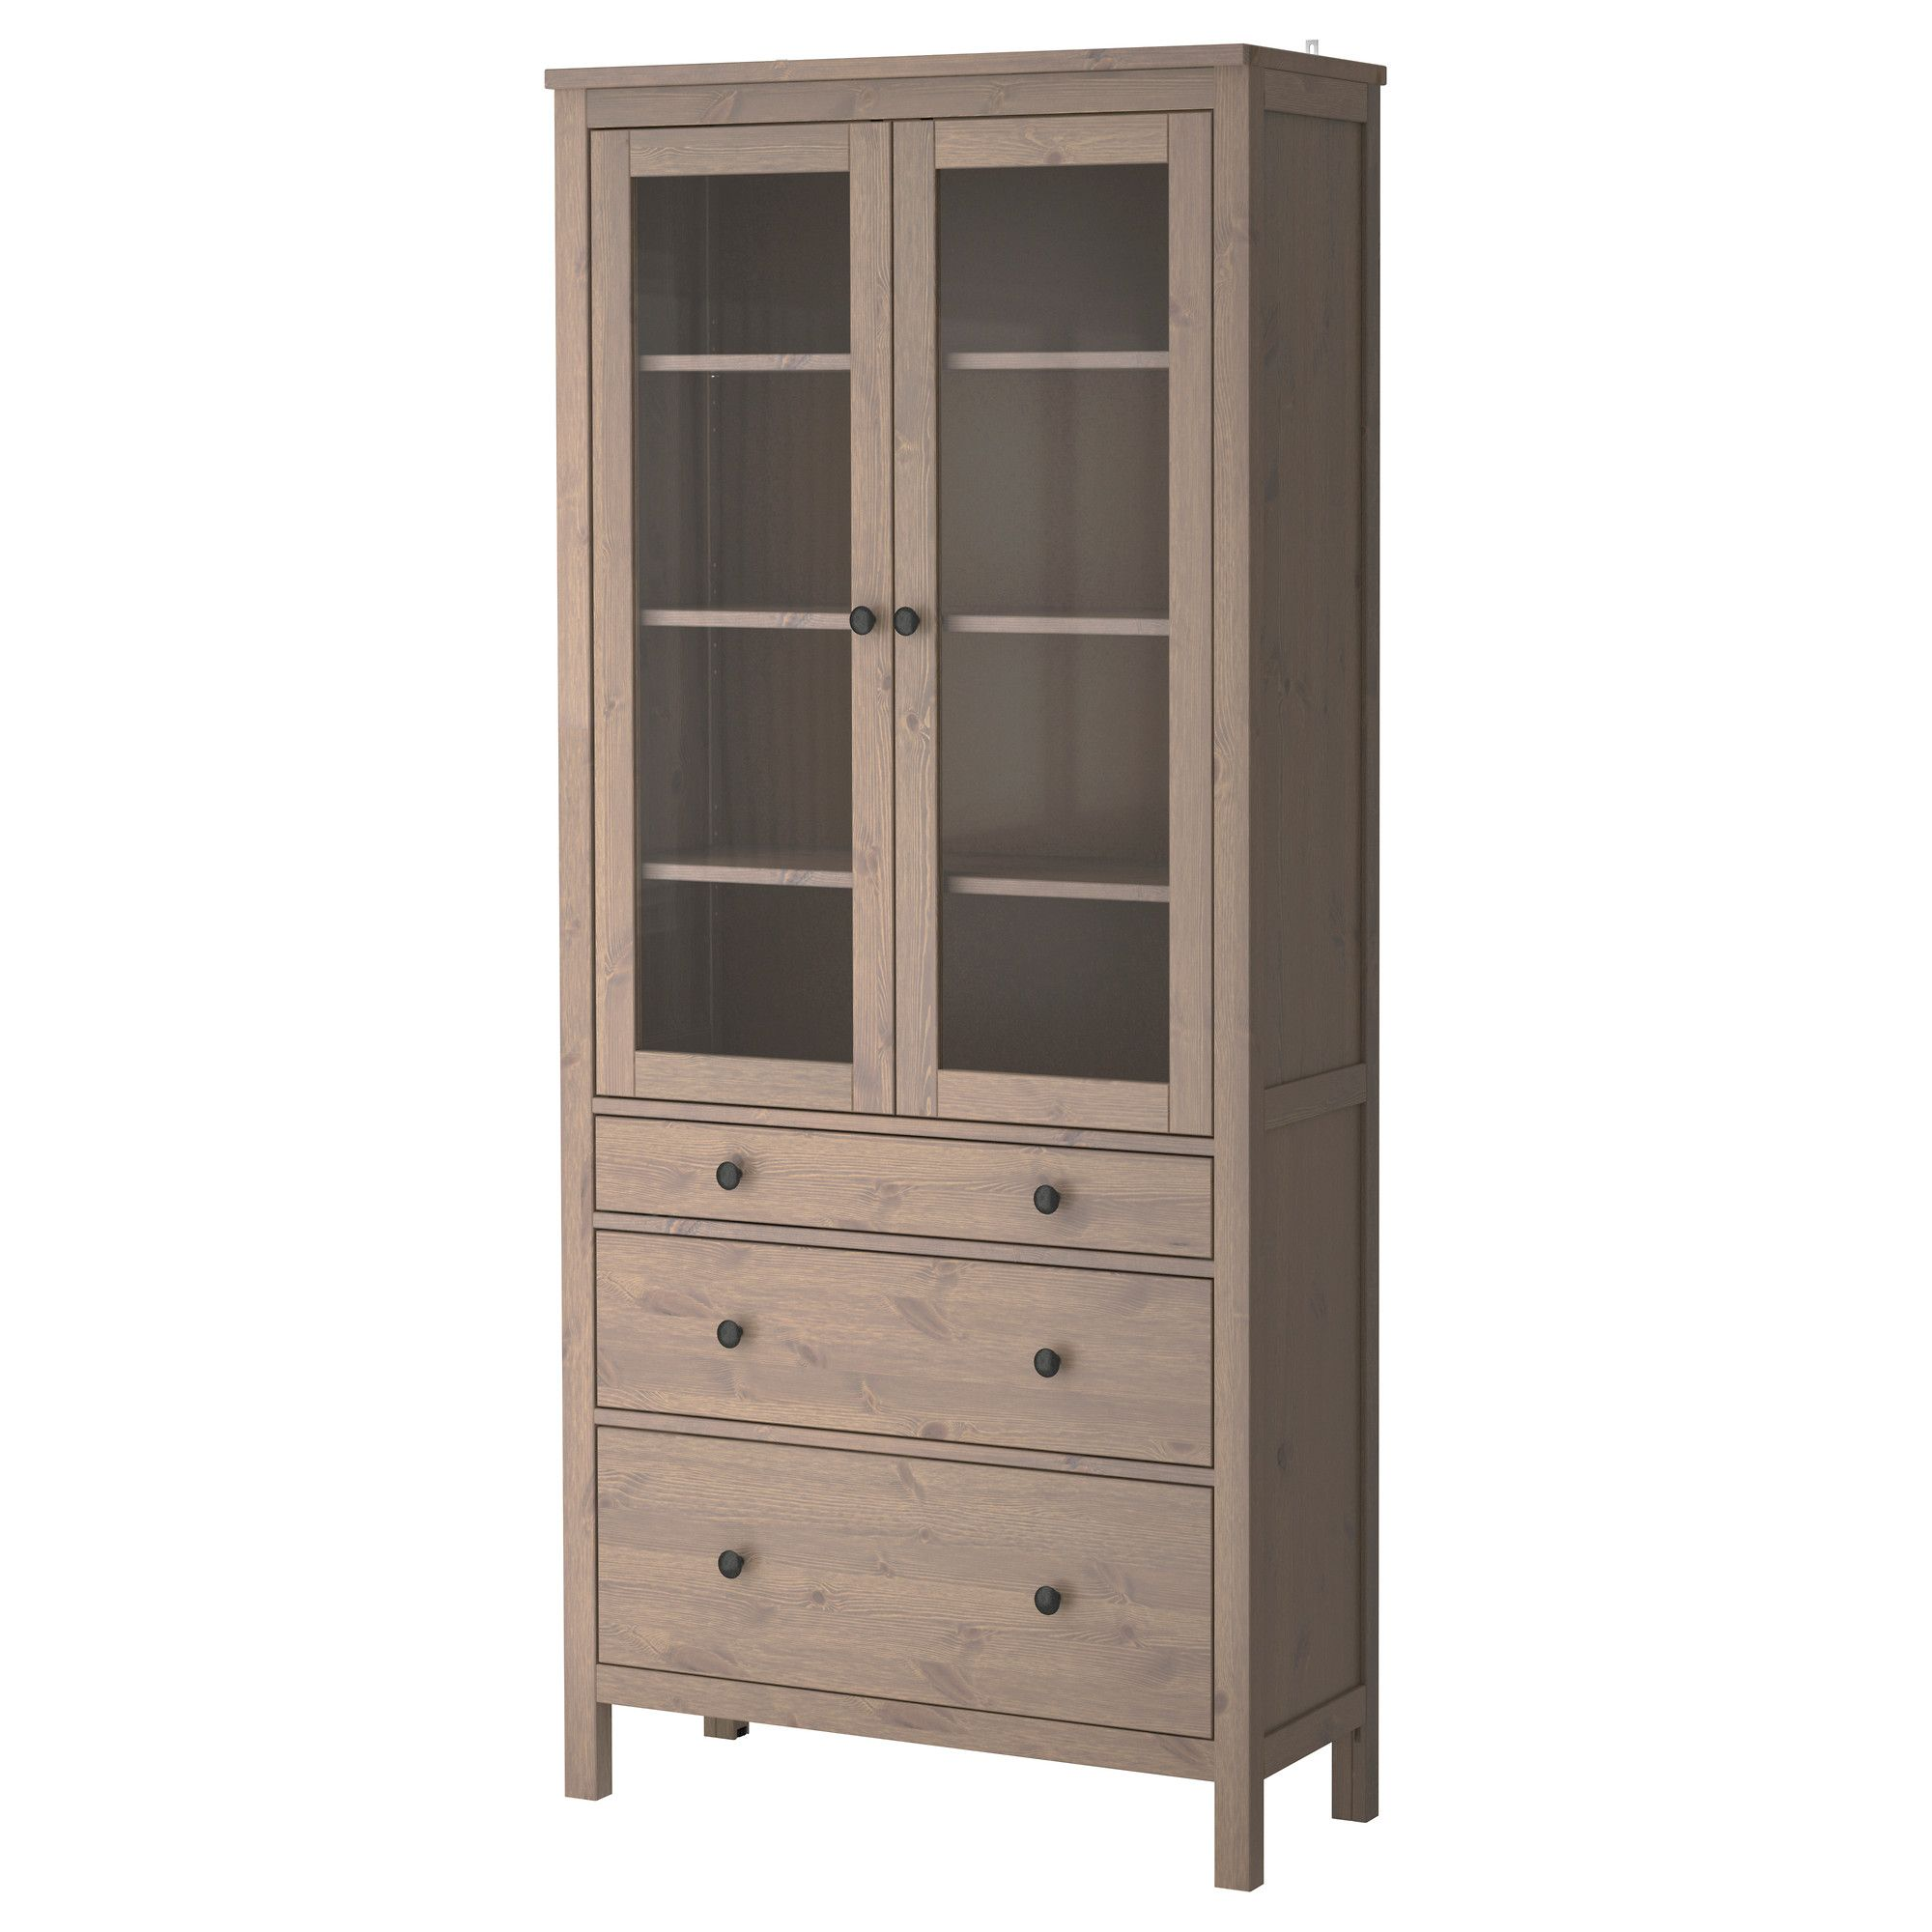 hemnes glass-door cabinet with 3 drawers - gray-brown - ikea - 14, Wohnzimmer